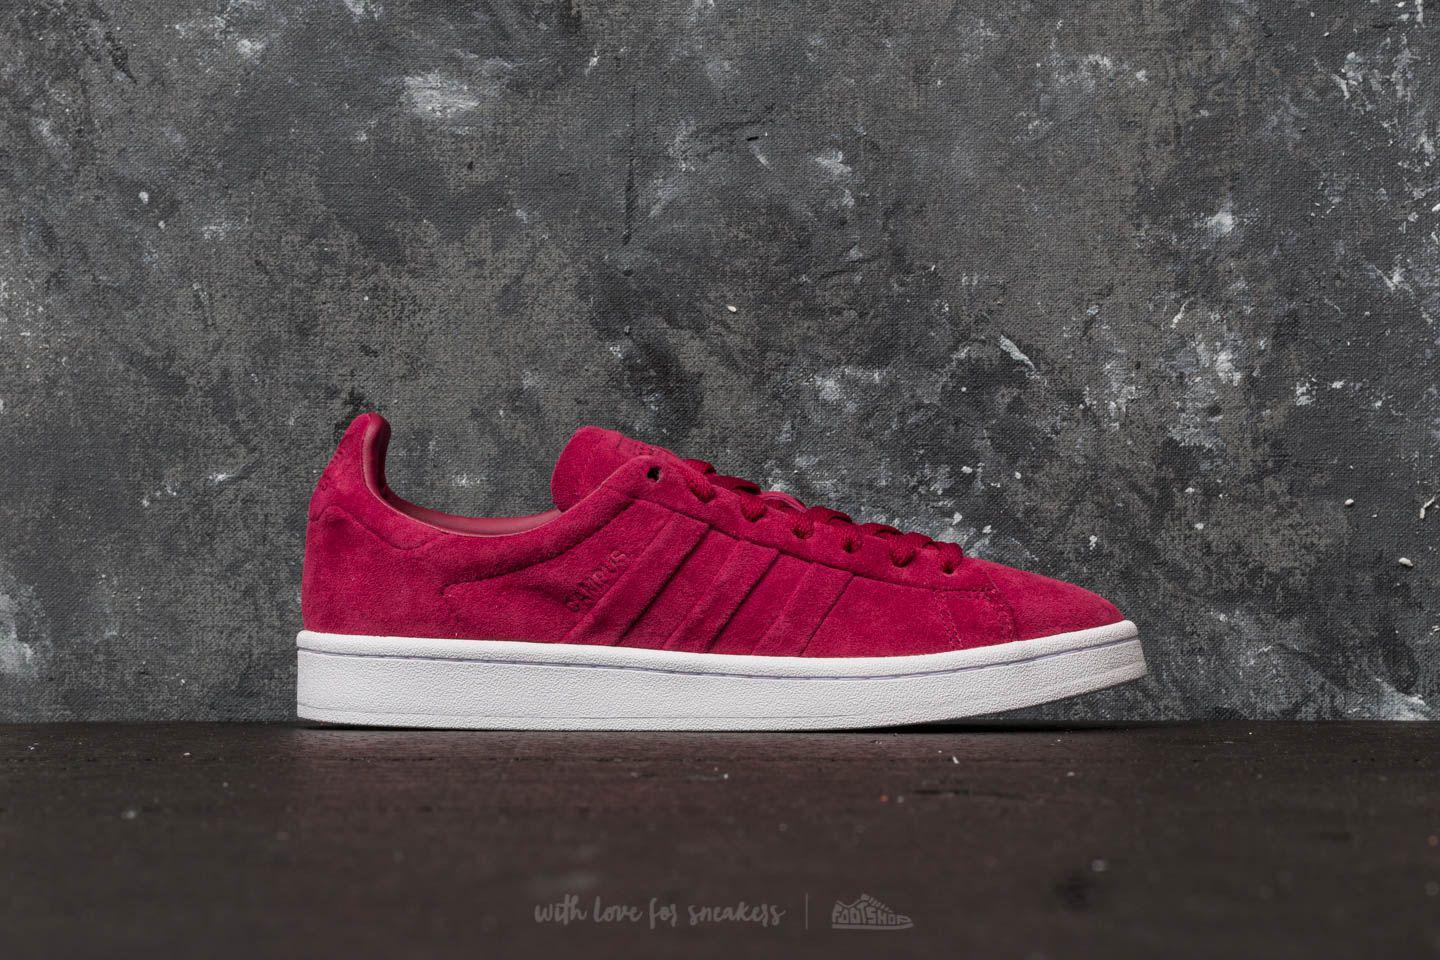 official photos b0223 9607f Adidas Originals - Multicolor Adidas Campus Stitch And Turn Mystery Ruby  Mystery Ruby Ftw. View fullscreen